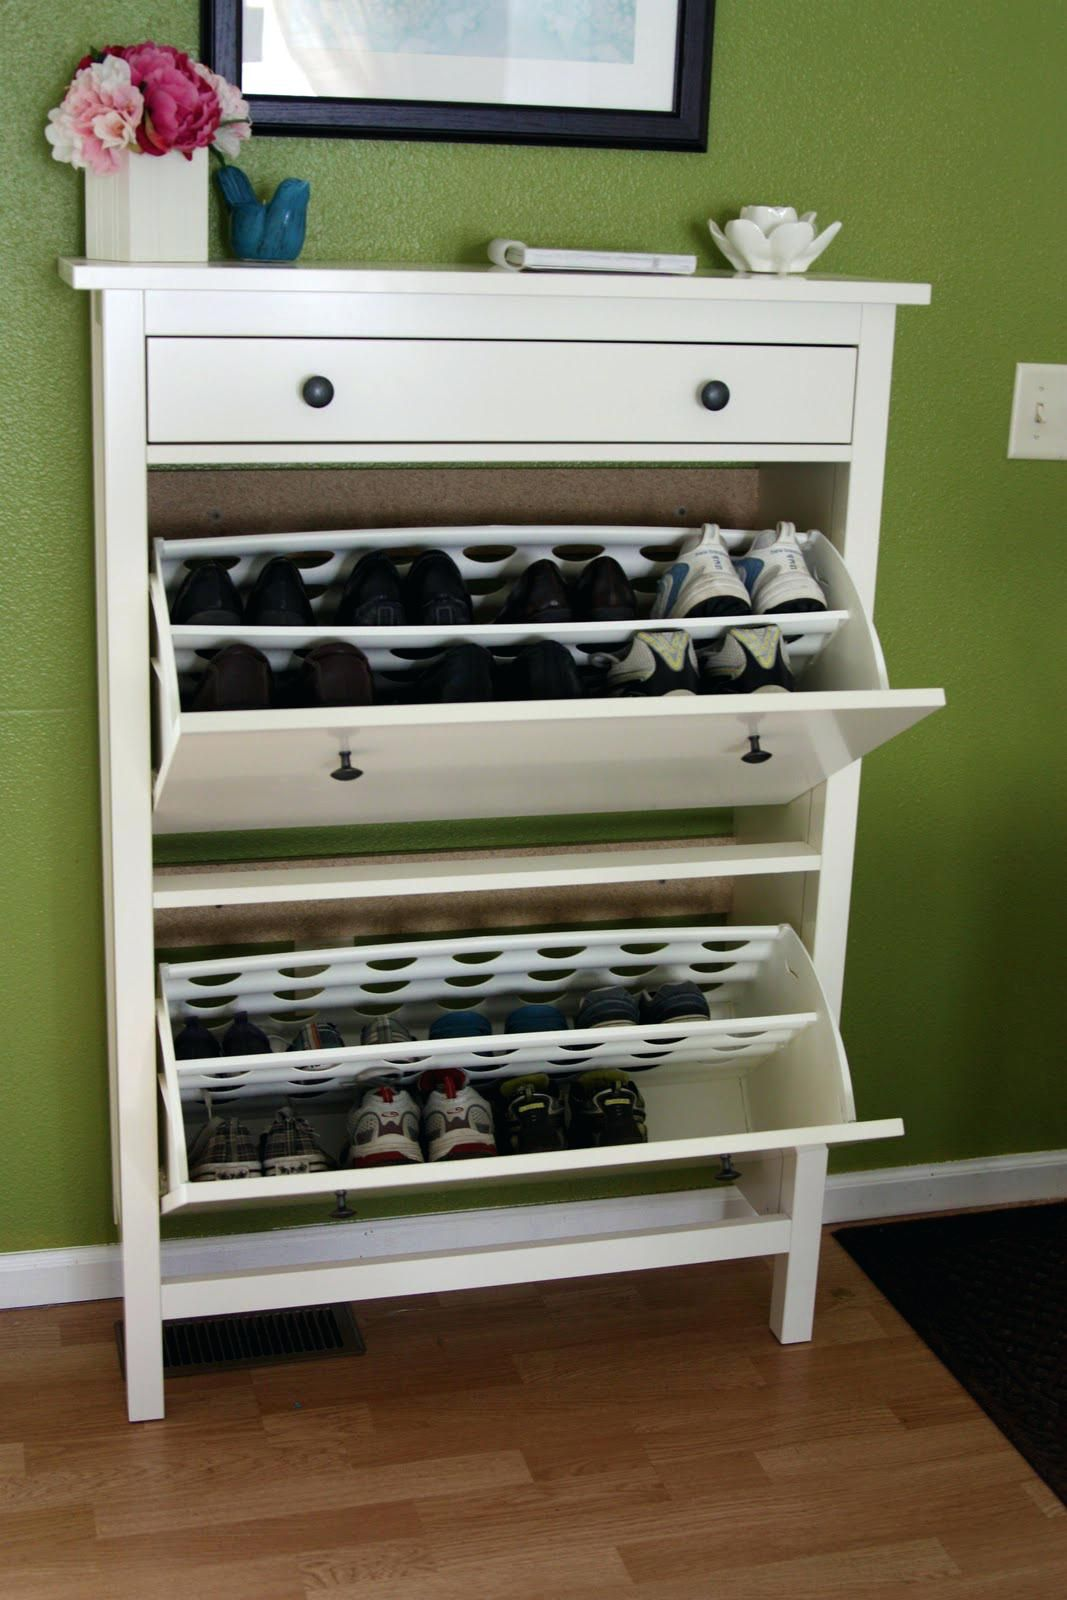 Entry hallway storage ideas  Pin by The Scrapbook Studio on For the Home  Pinterest  Diy shoe